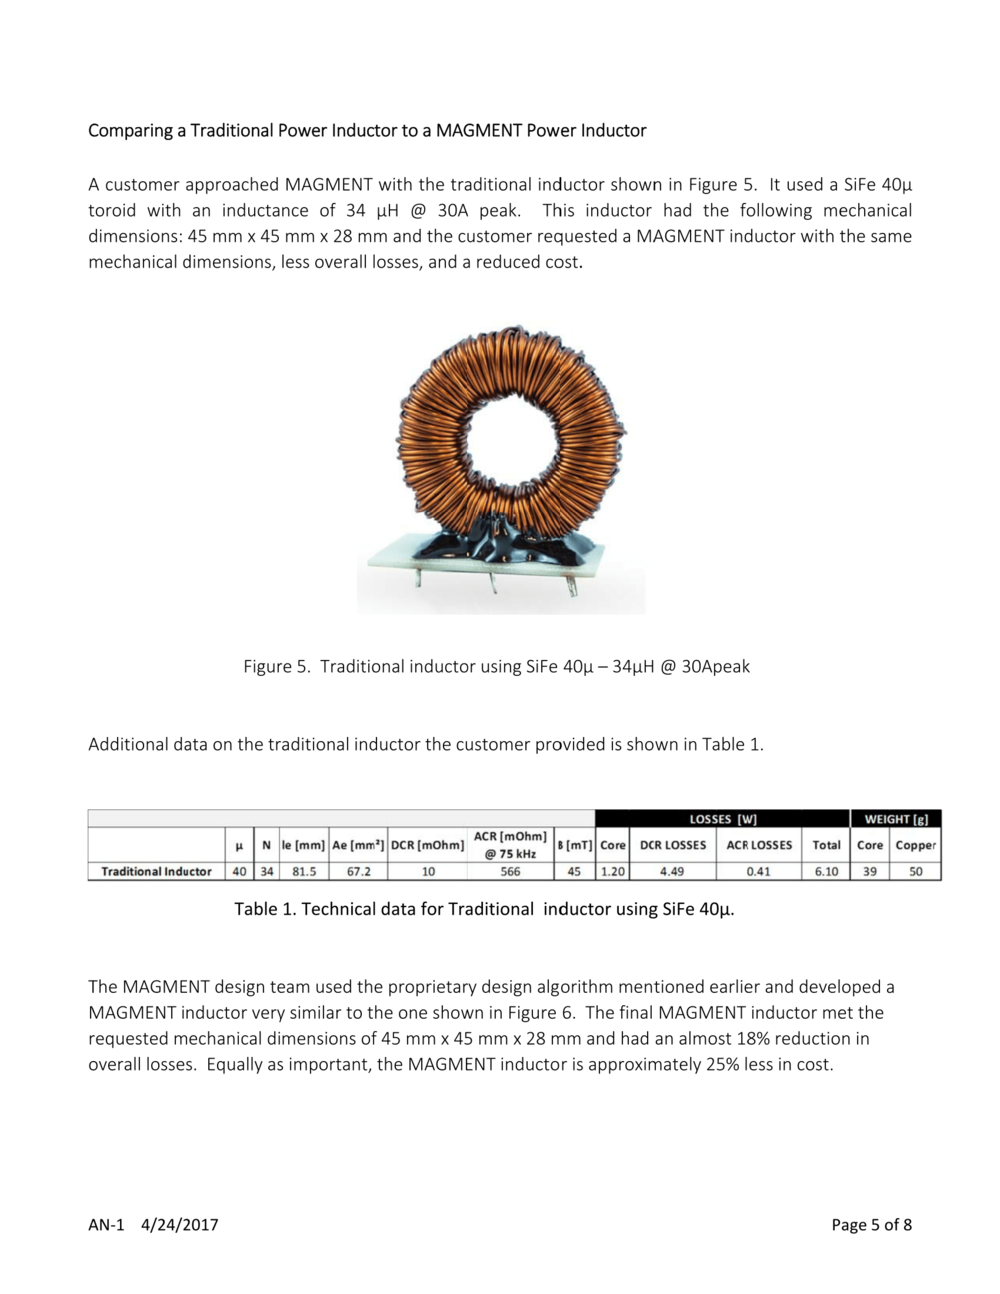 Breakthrough_in_Power_Magnetics_Materials-5.png